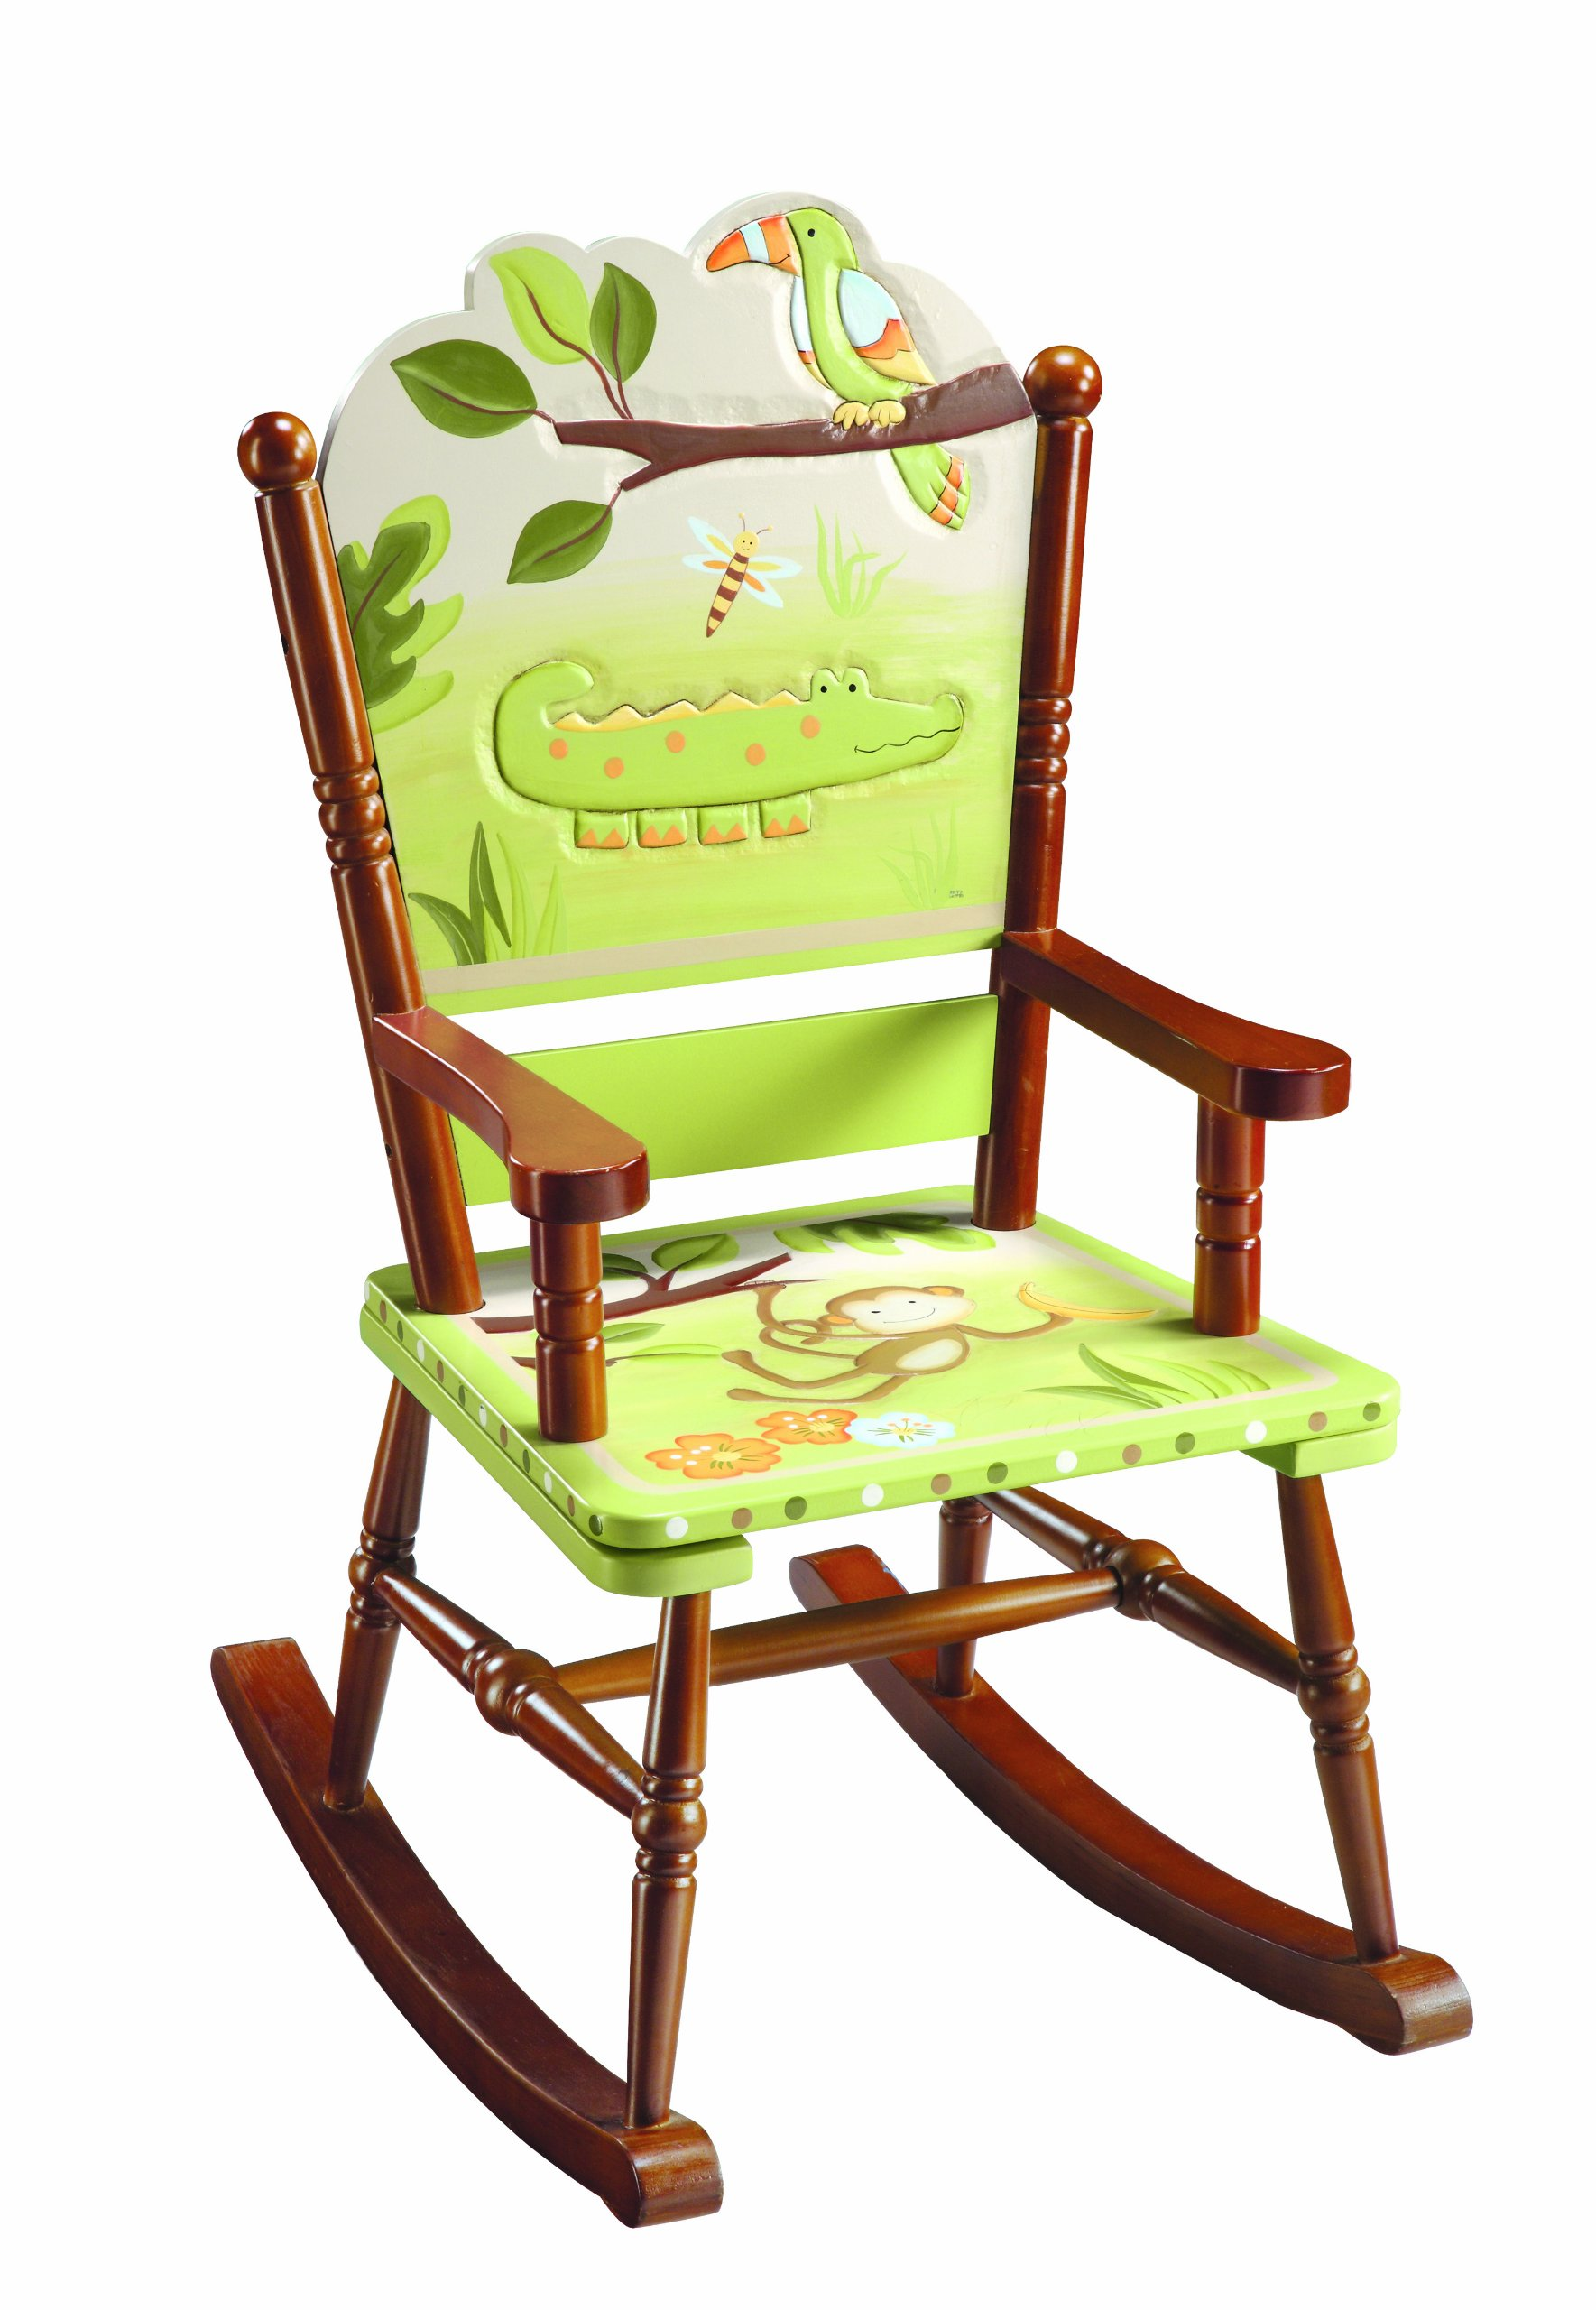 Guidecraft Lambs & Ivy Papagayo Rocking Chair